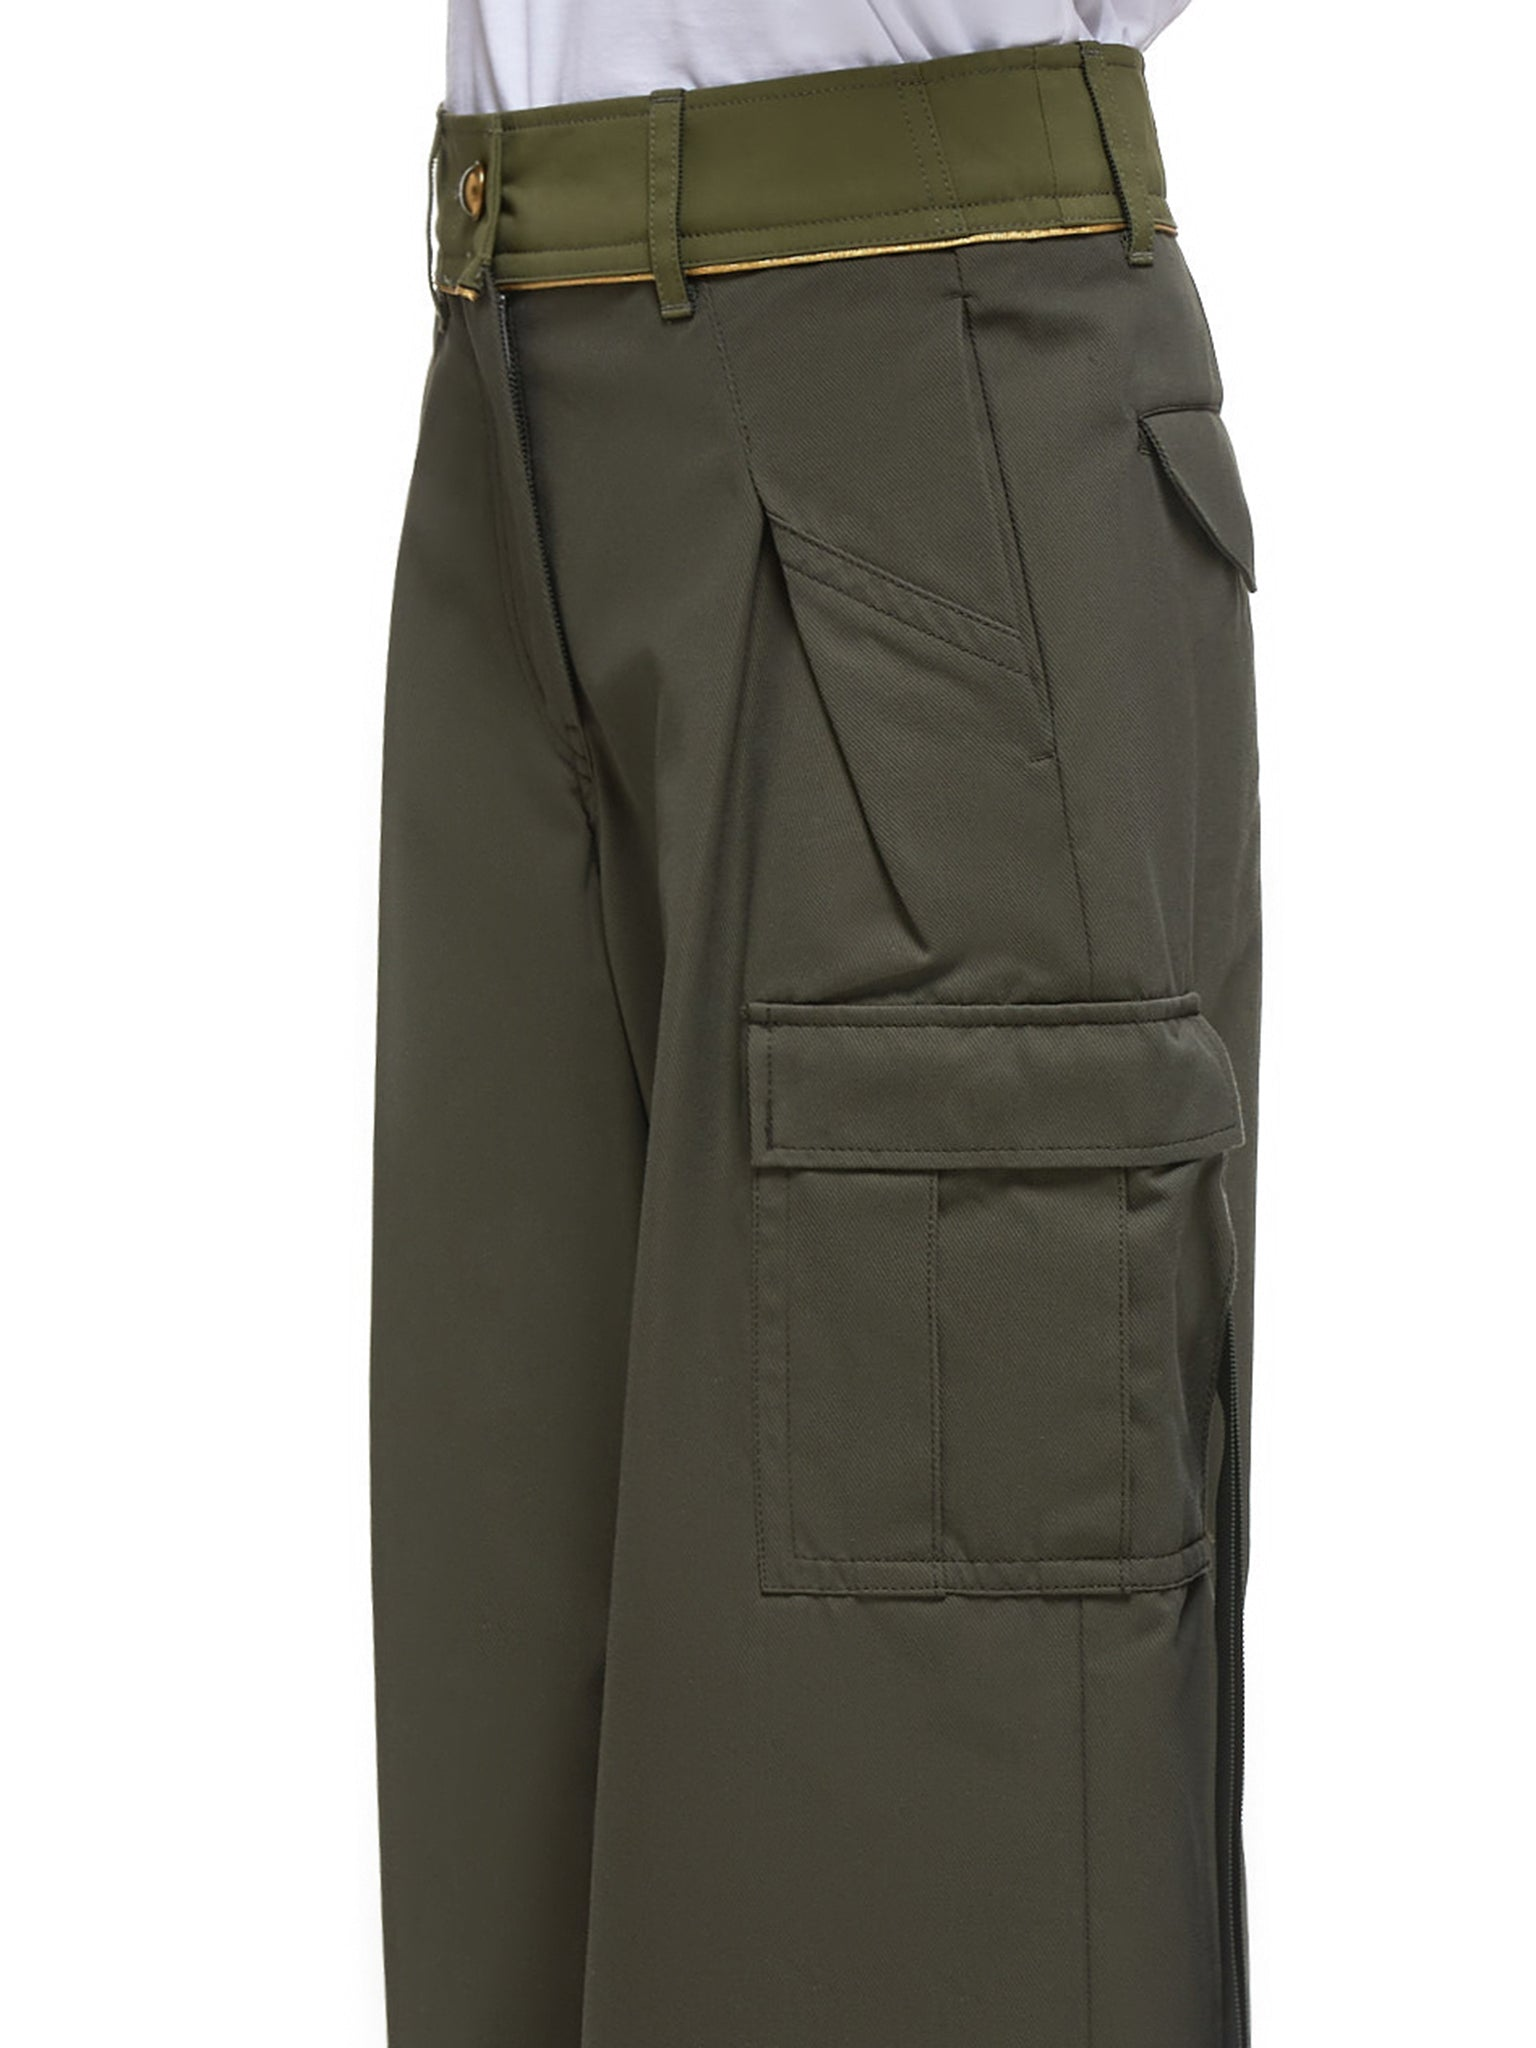 Cropped Trousers (04855-501-KHAKI)